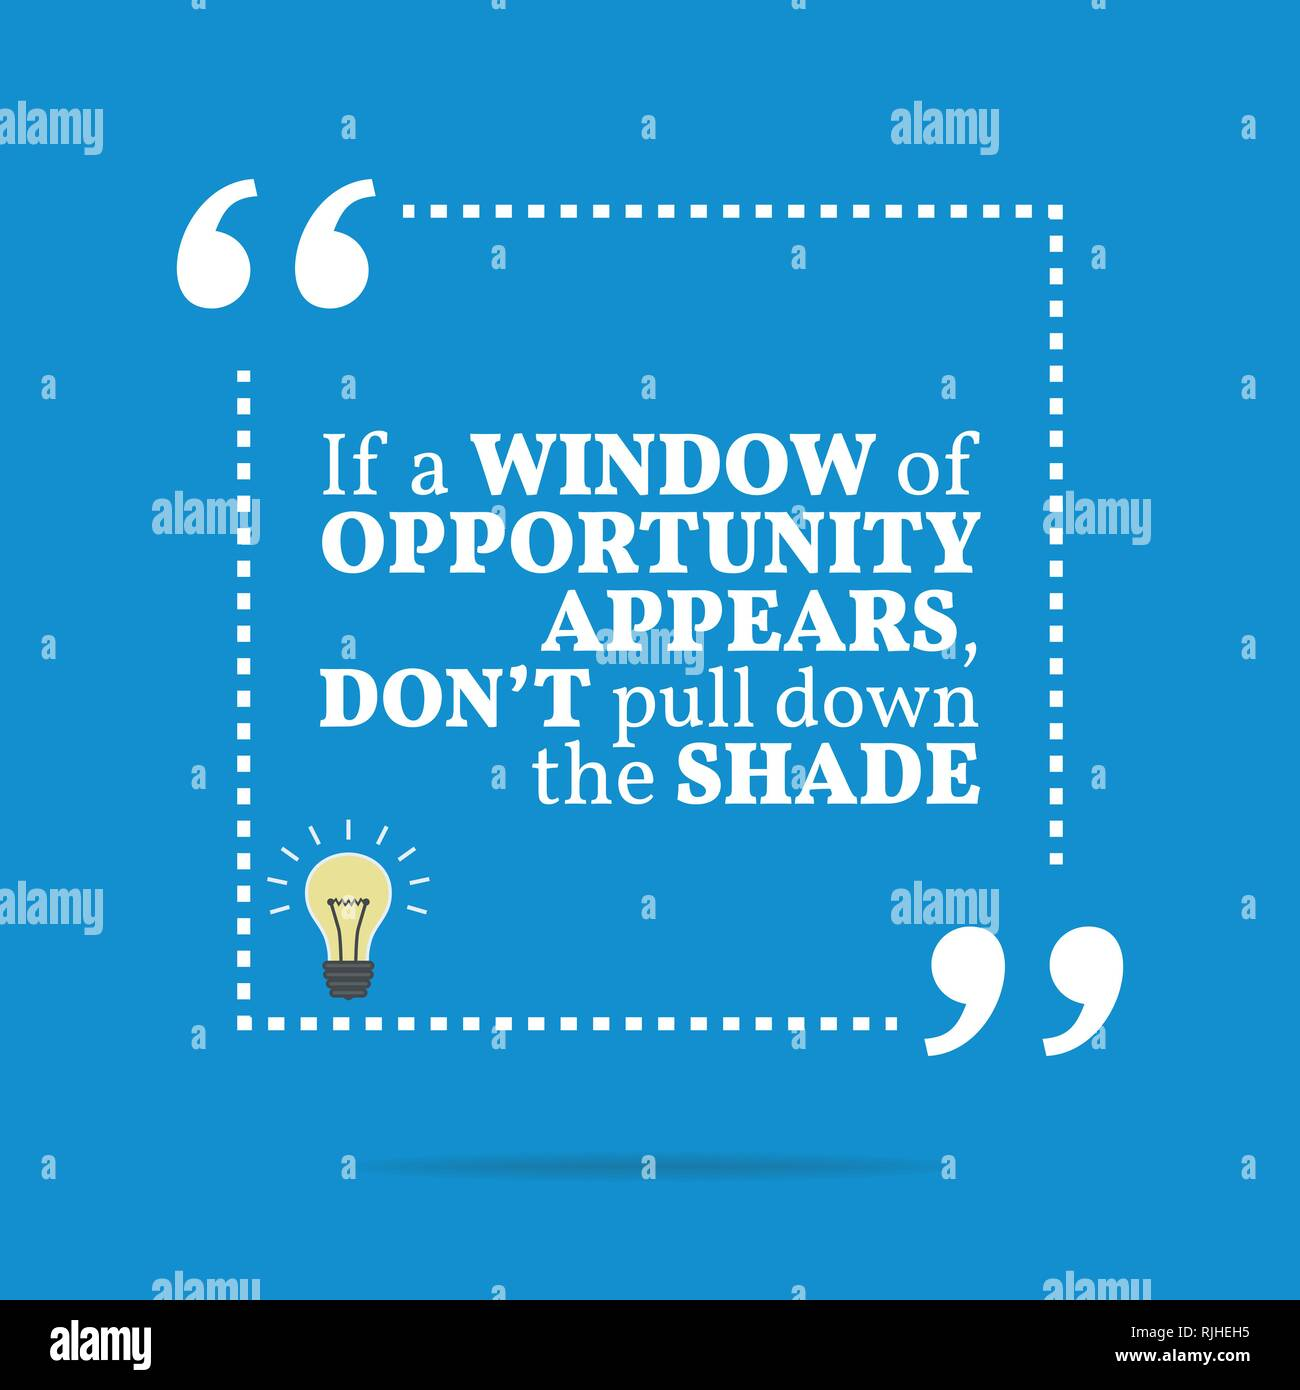 Inspirational motivational quote. If a window of opportunity appears, don't pull down the shade. Simple trendy design. - Stock Vector